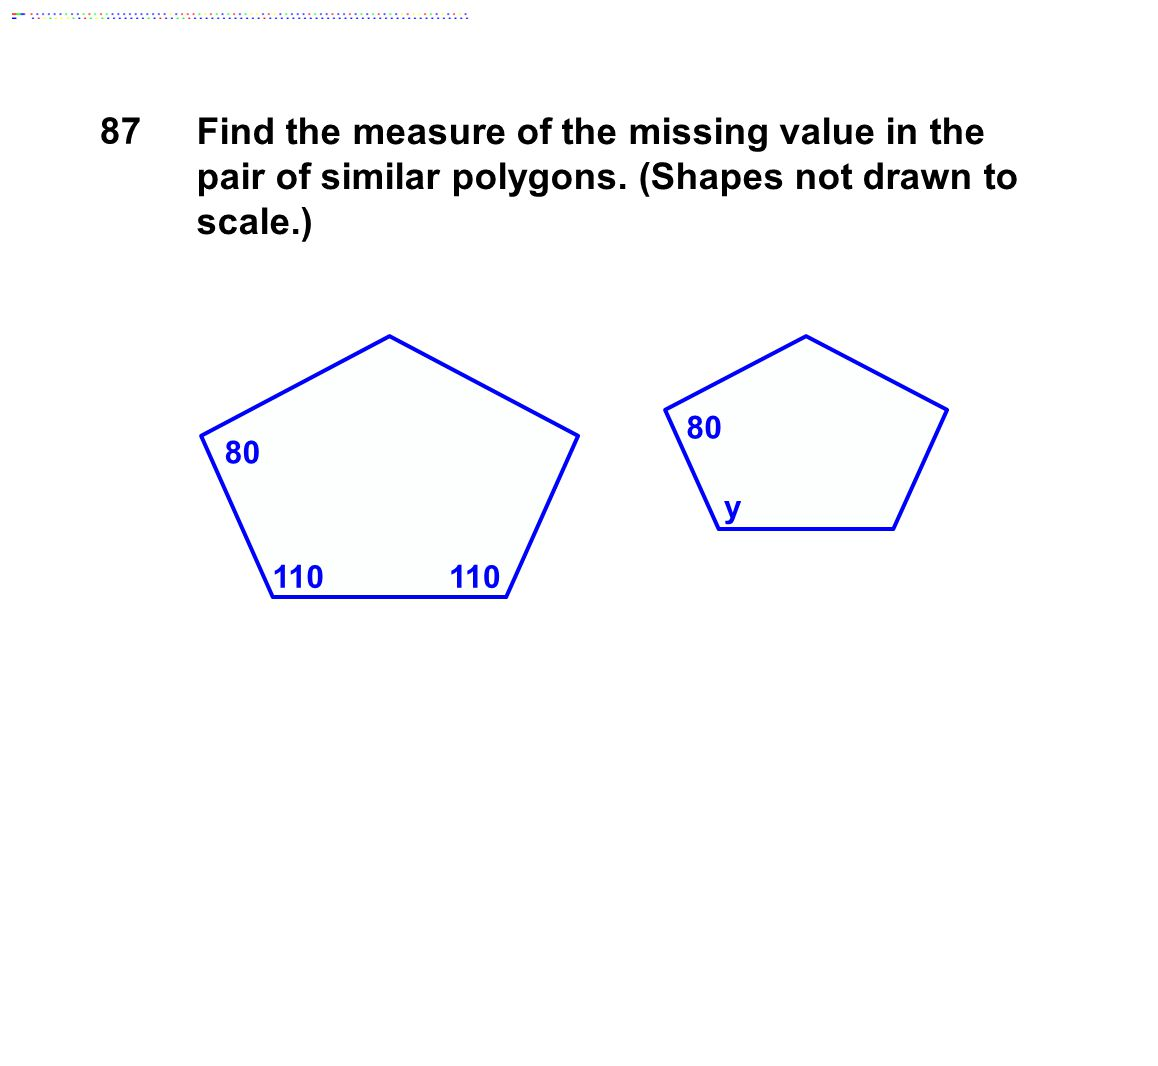 87 Find the measure of the missing value in the pair of similar polygons. (Shapes not drawn to scale.)